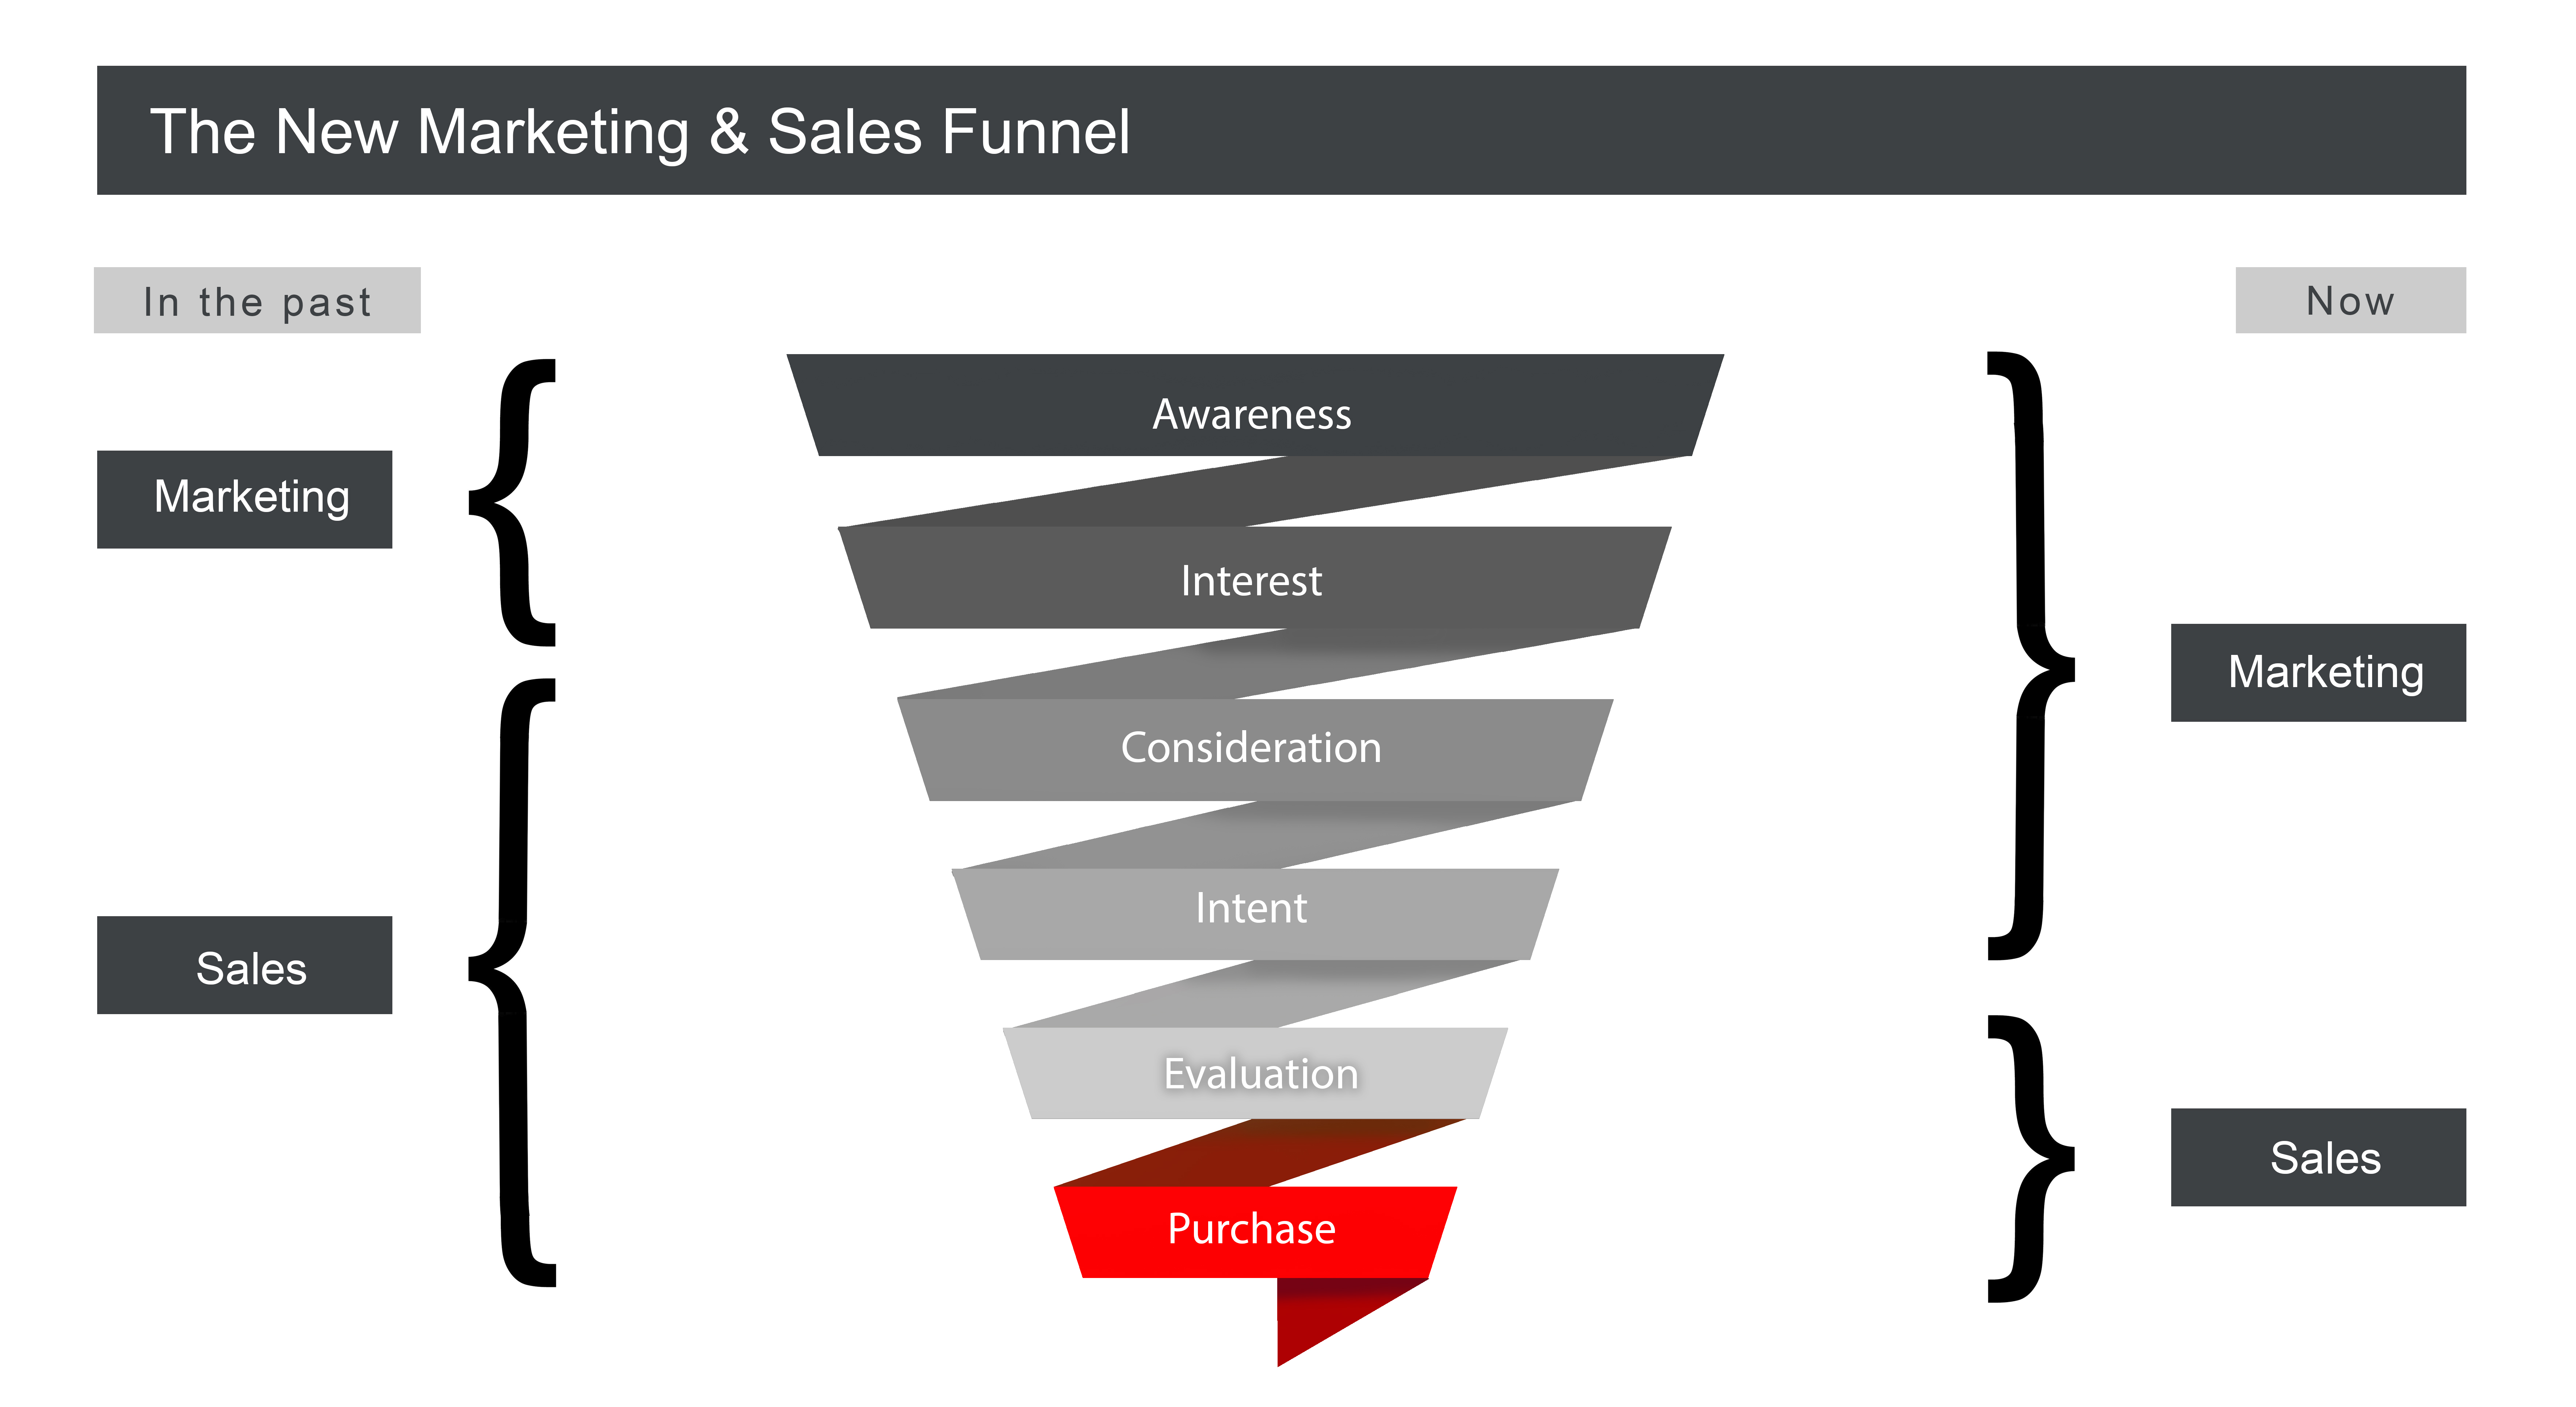 Shift from sales to marketing